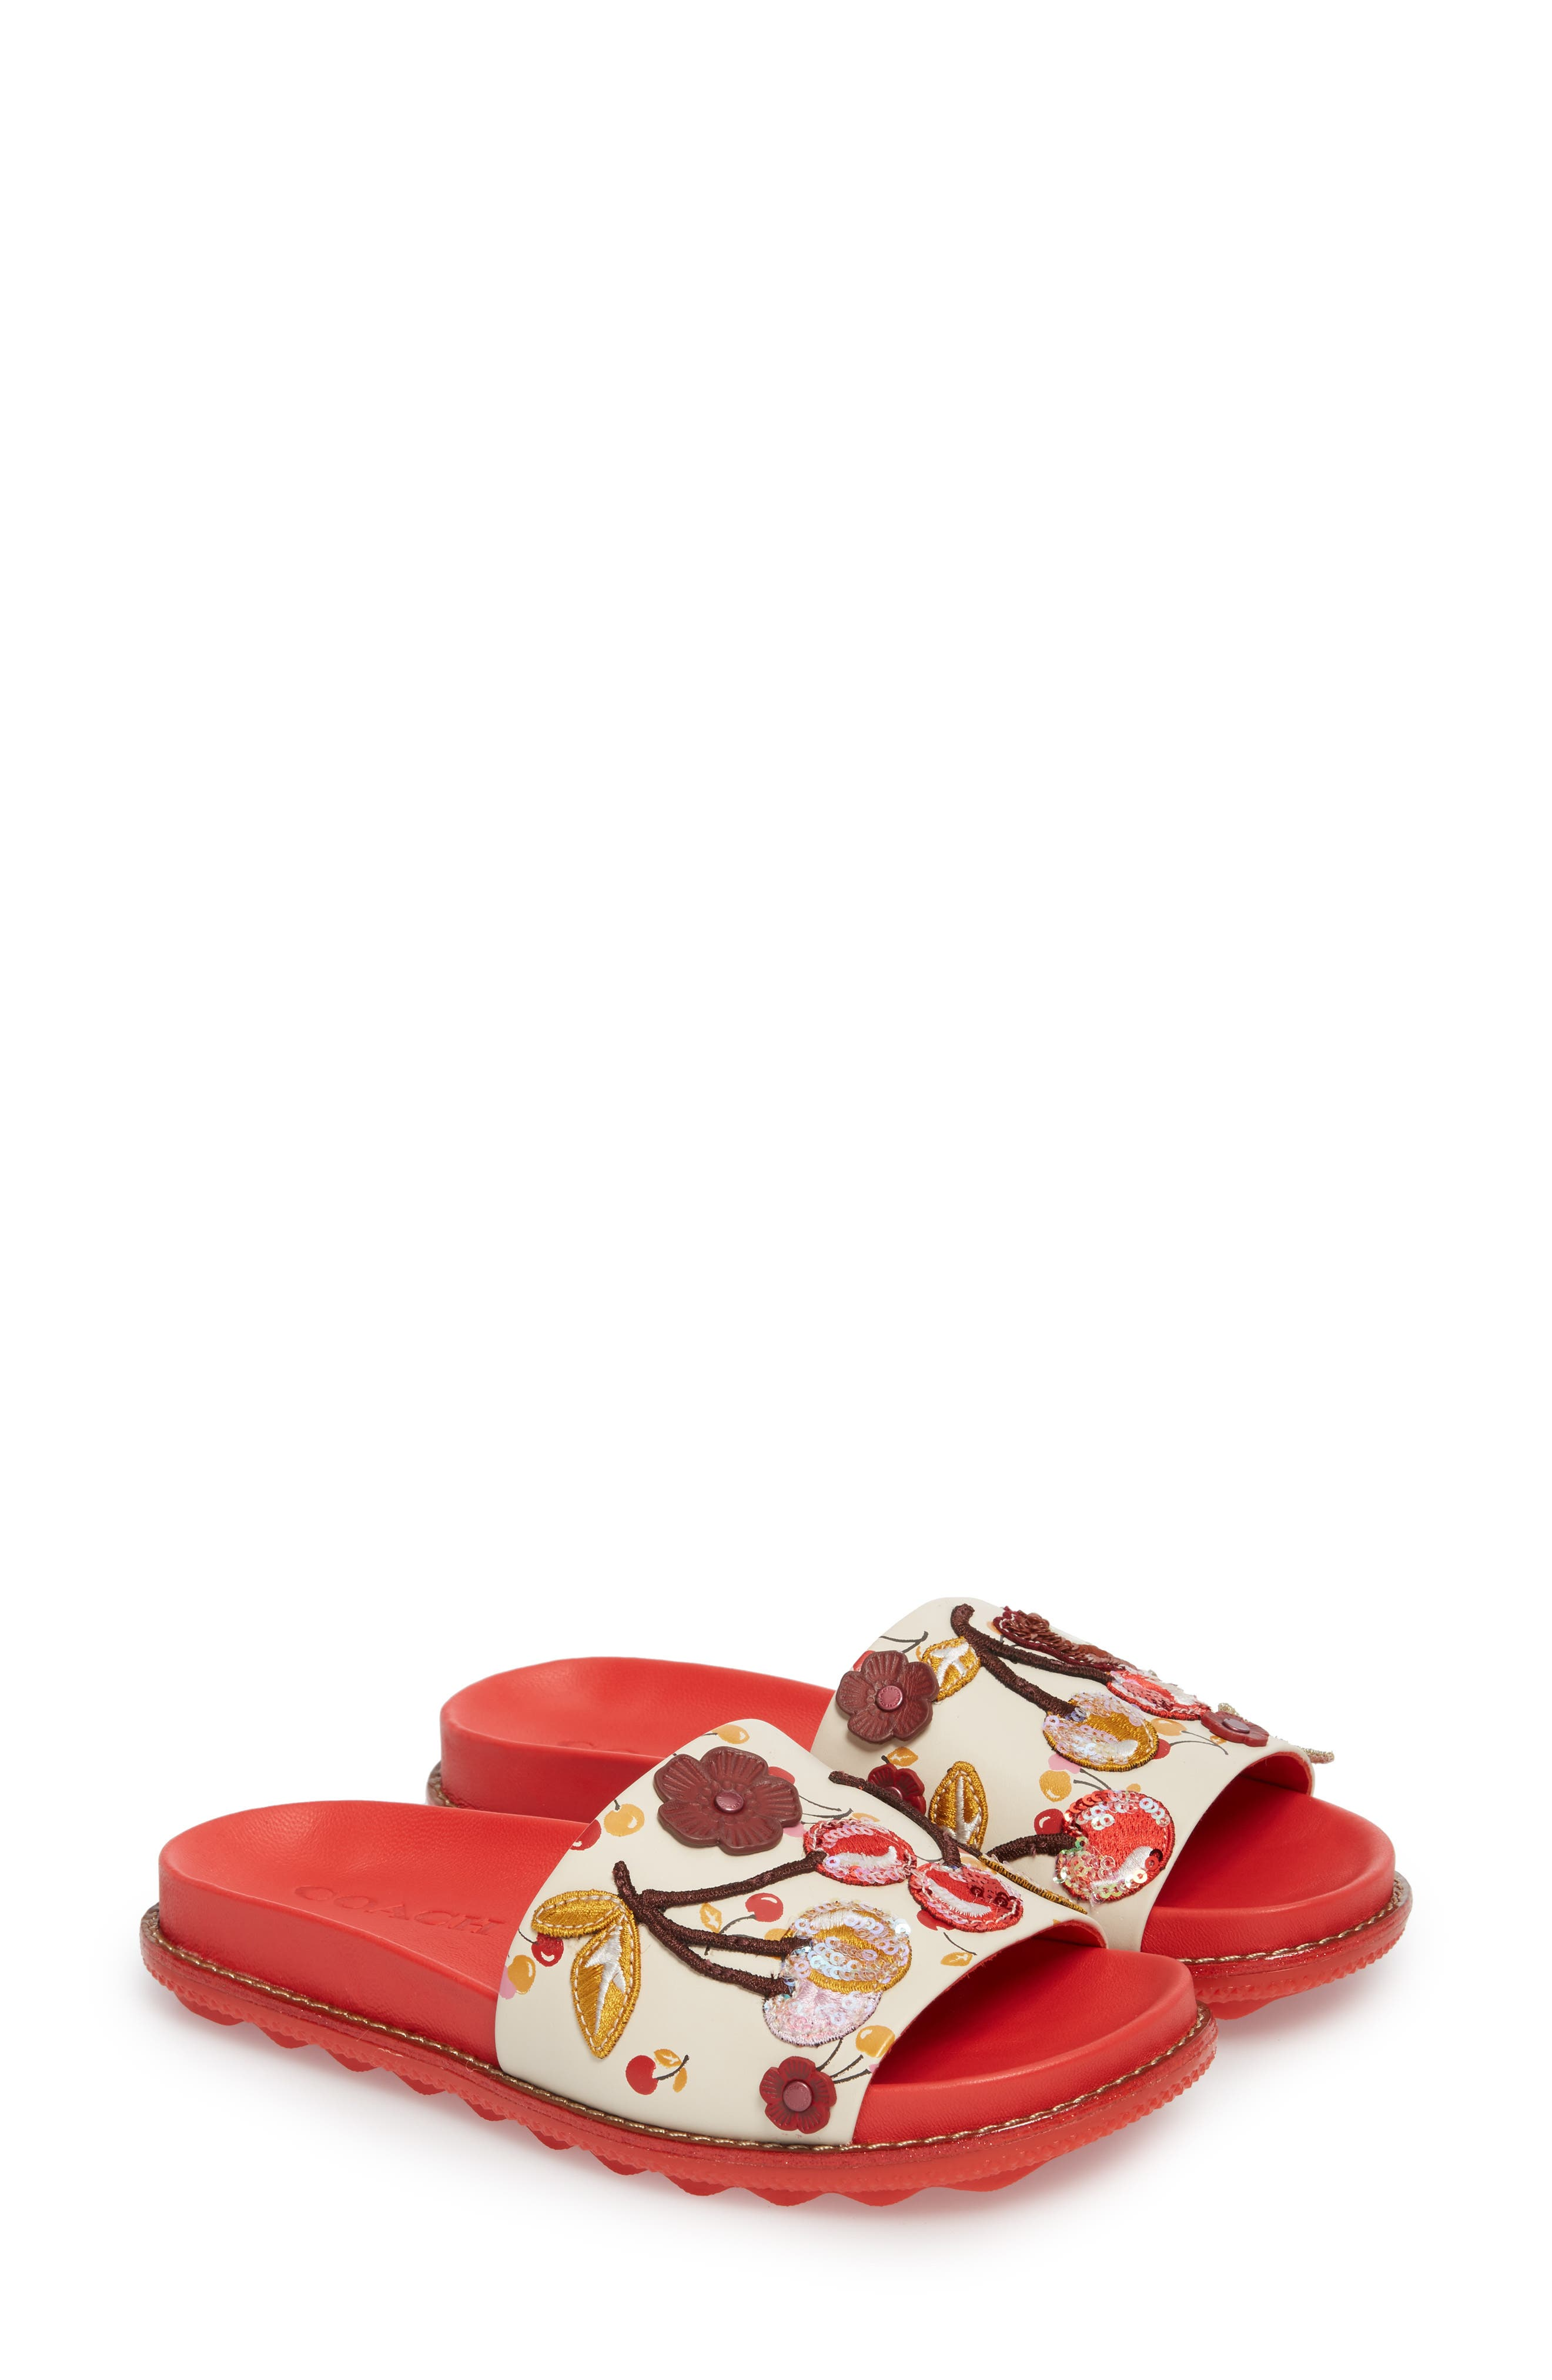 Patch Sport Slide Sandal,                             Main thumbnail 1, color,                             Ivory/ Red Leather